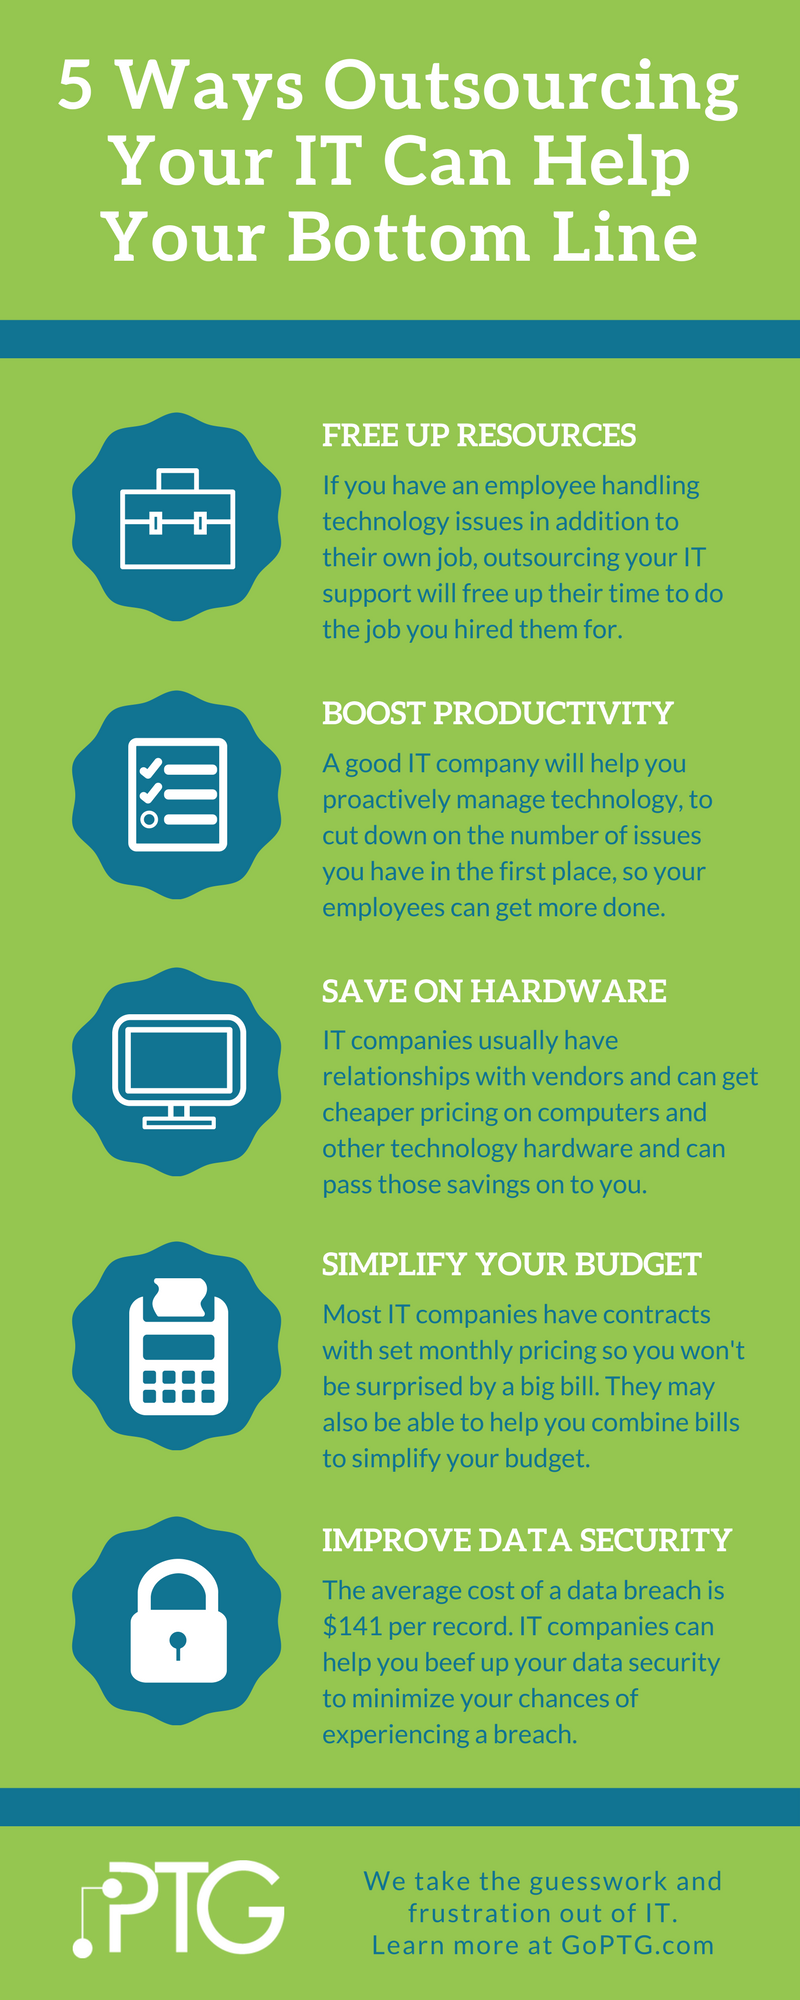 5-Ways-Outsourcing-Your-IT-Can-Help-Your-Bottom-Line